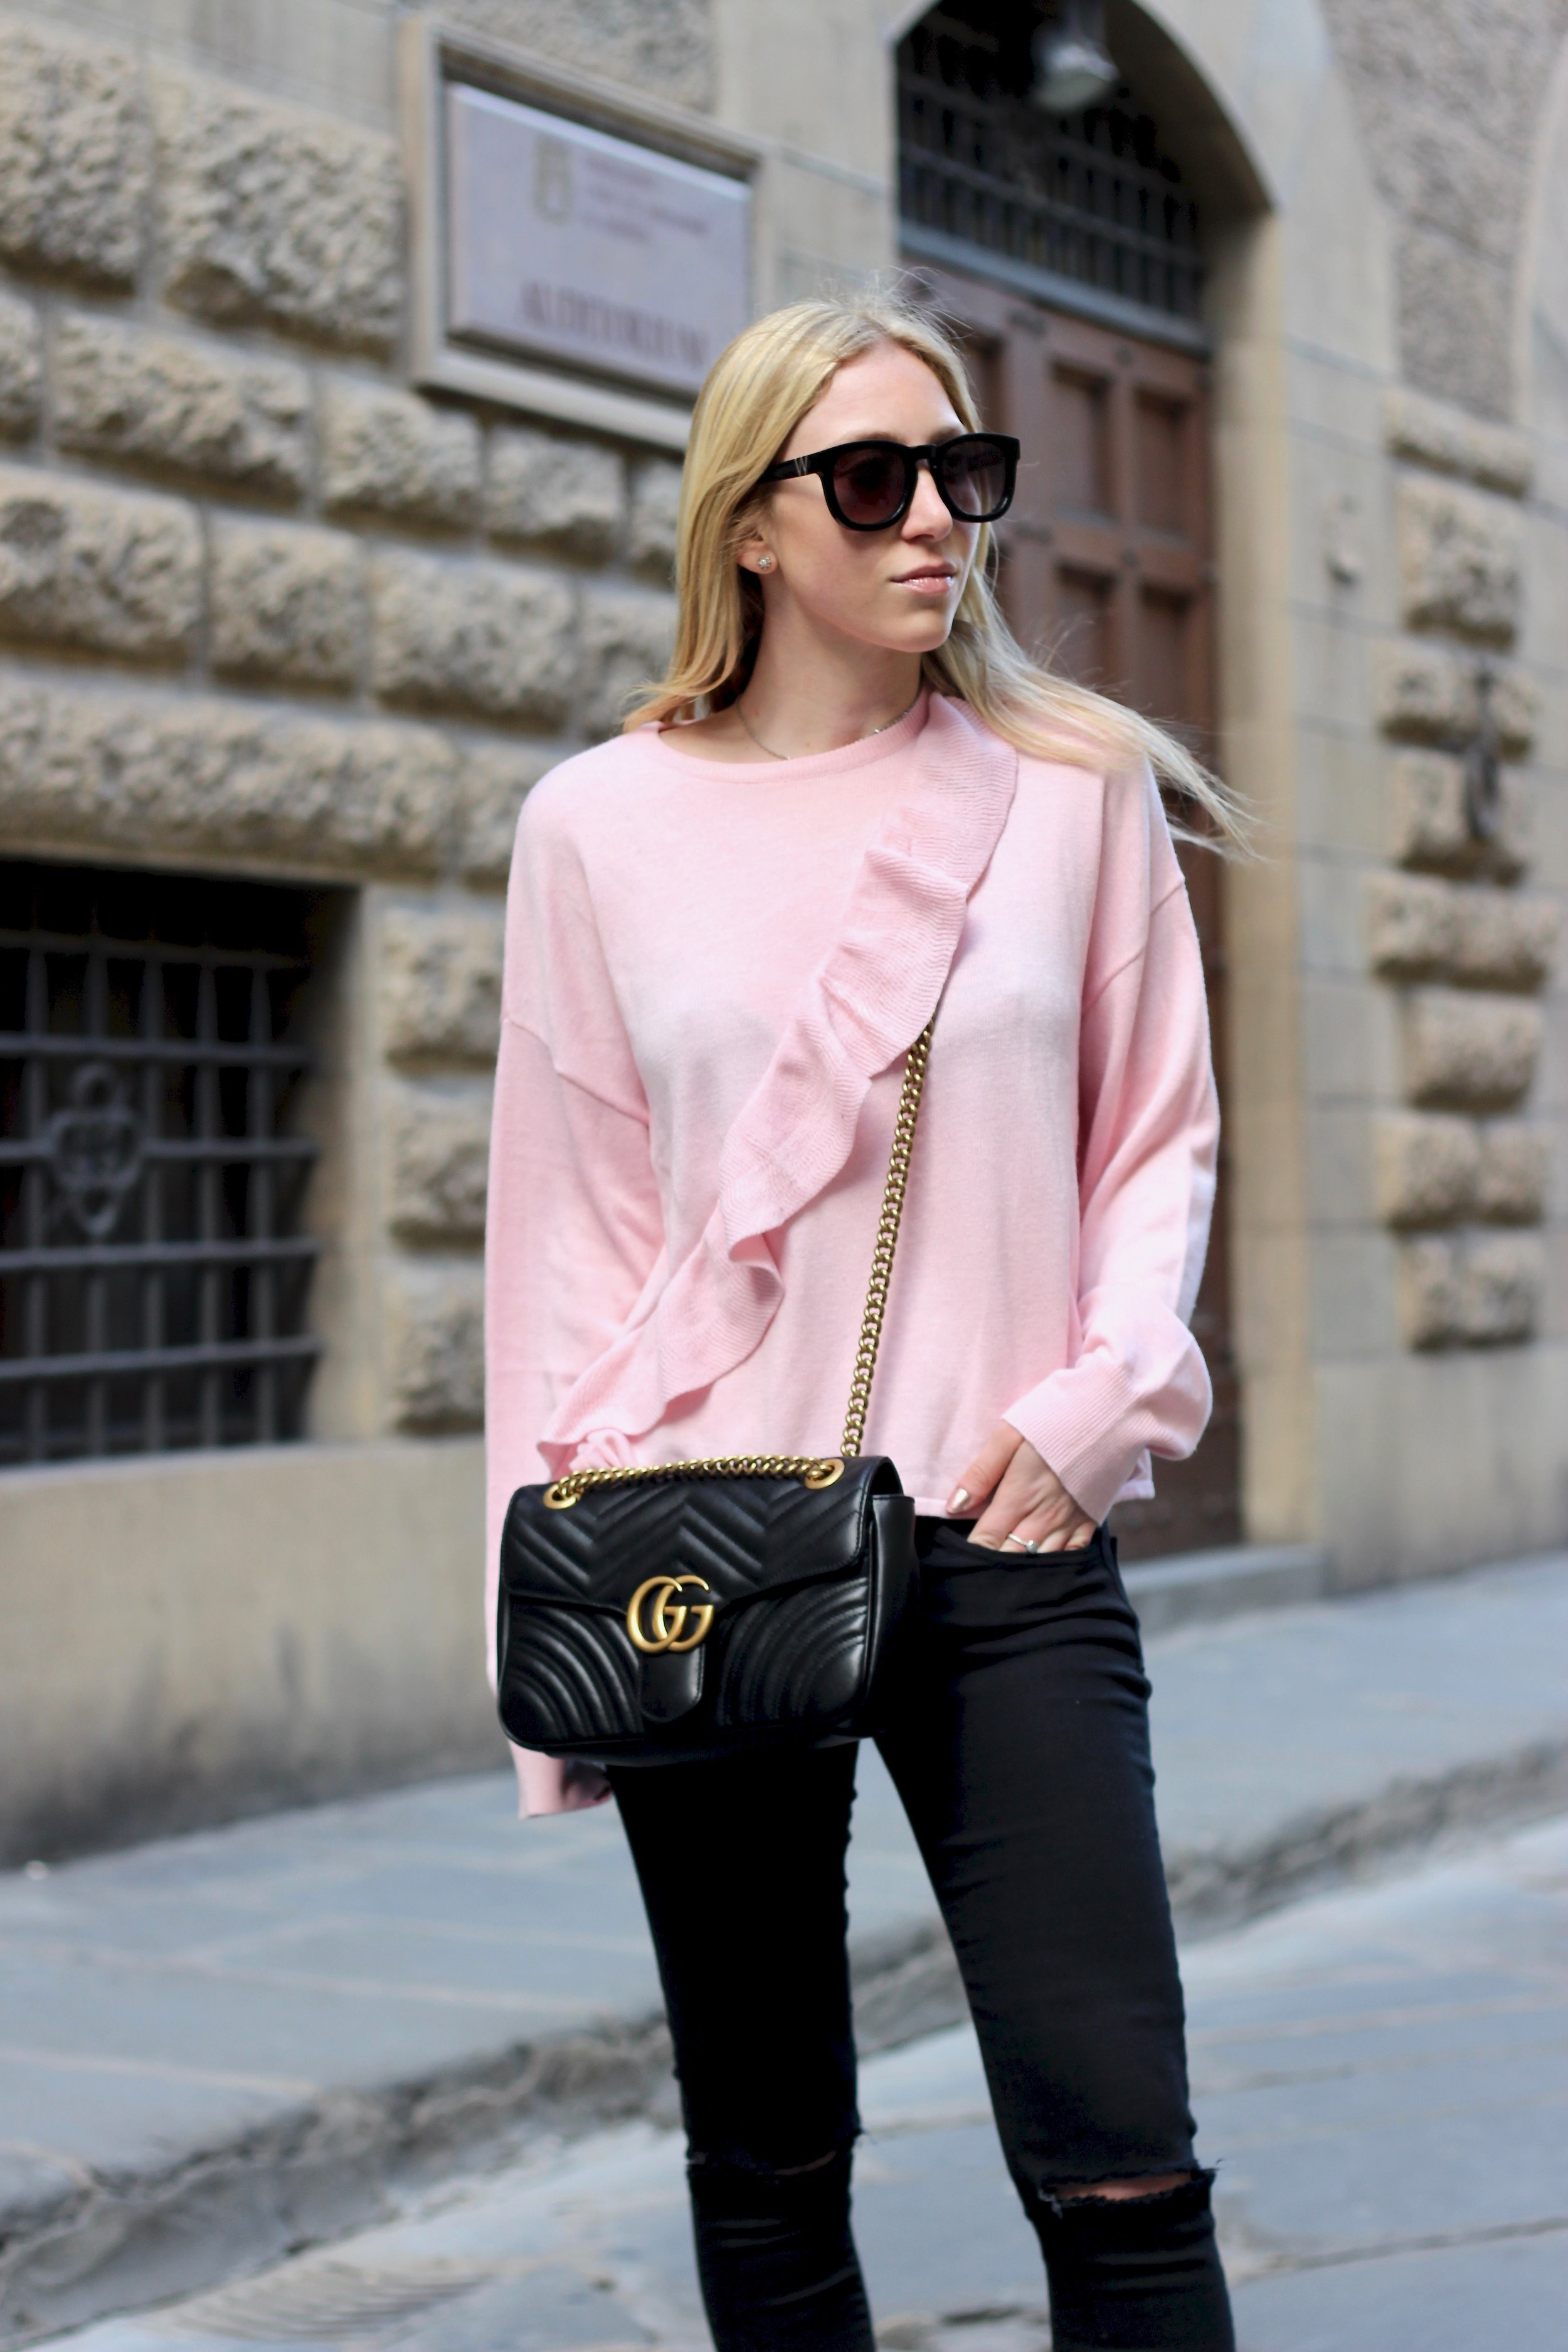 Gucci maramont bag and pink ruffle shirt for valentine's day by Au Courant Life